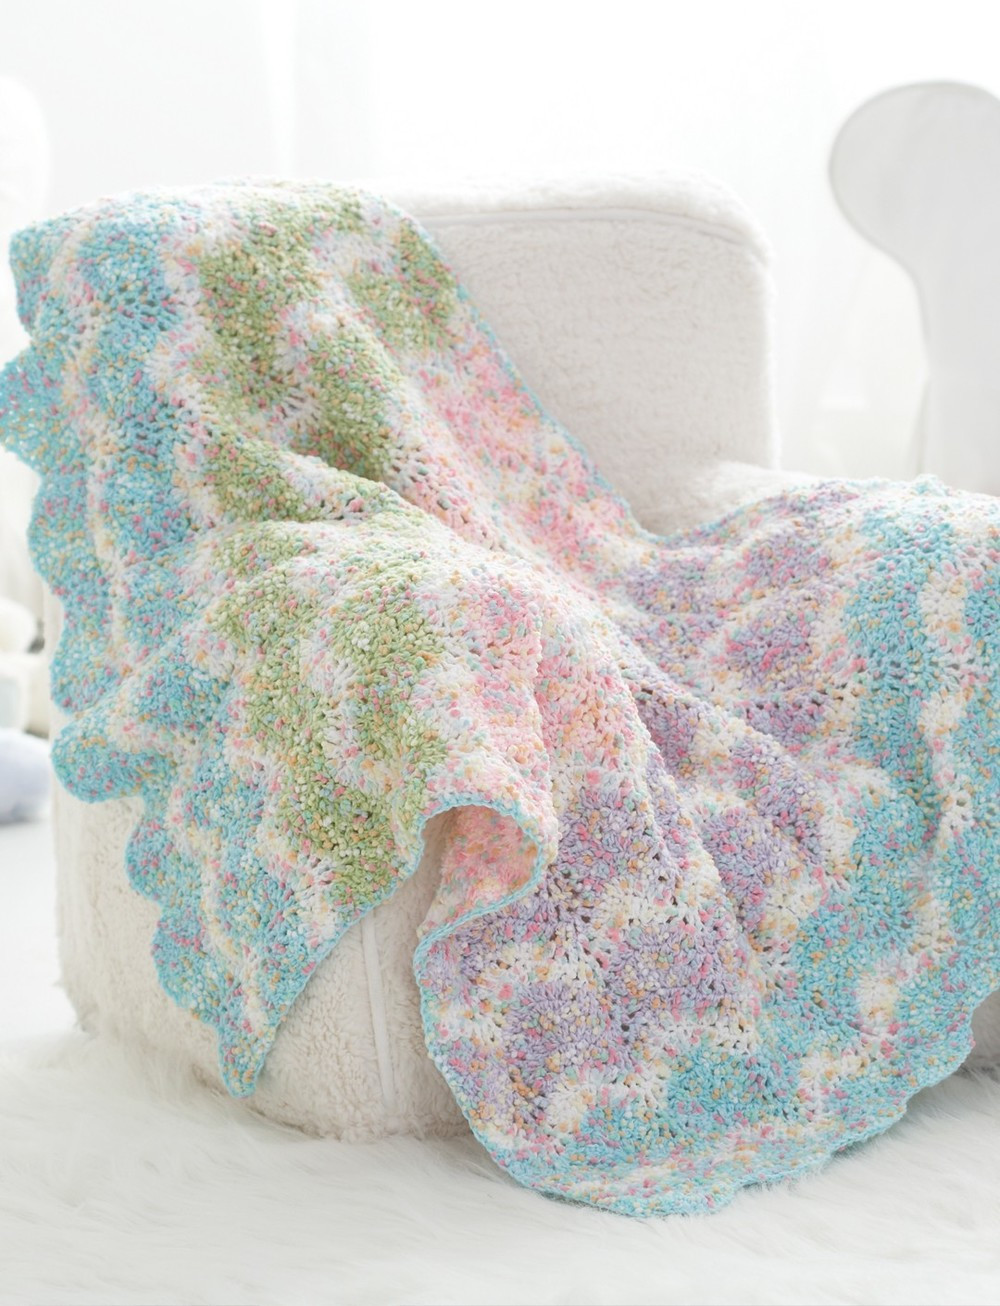 Baby Afghan Patterns New Sweet Pastel Waves Crochet Baby Blanket Pattern Of Amazing 46 Ideas Baby Afghan Patterns